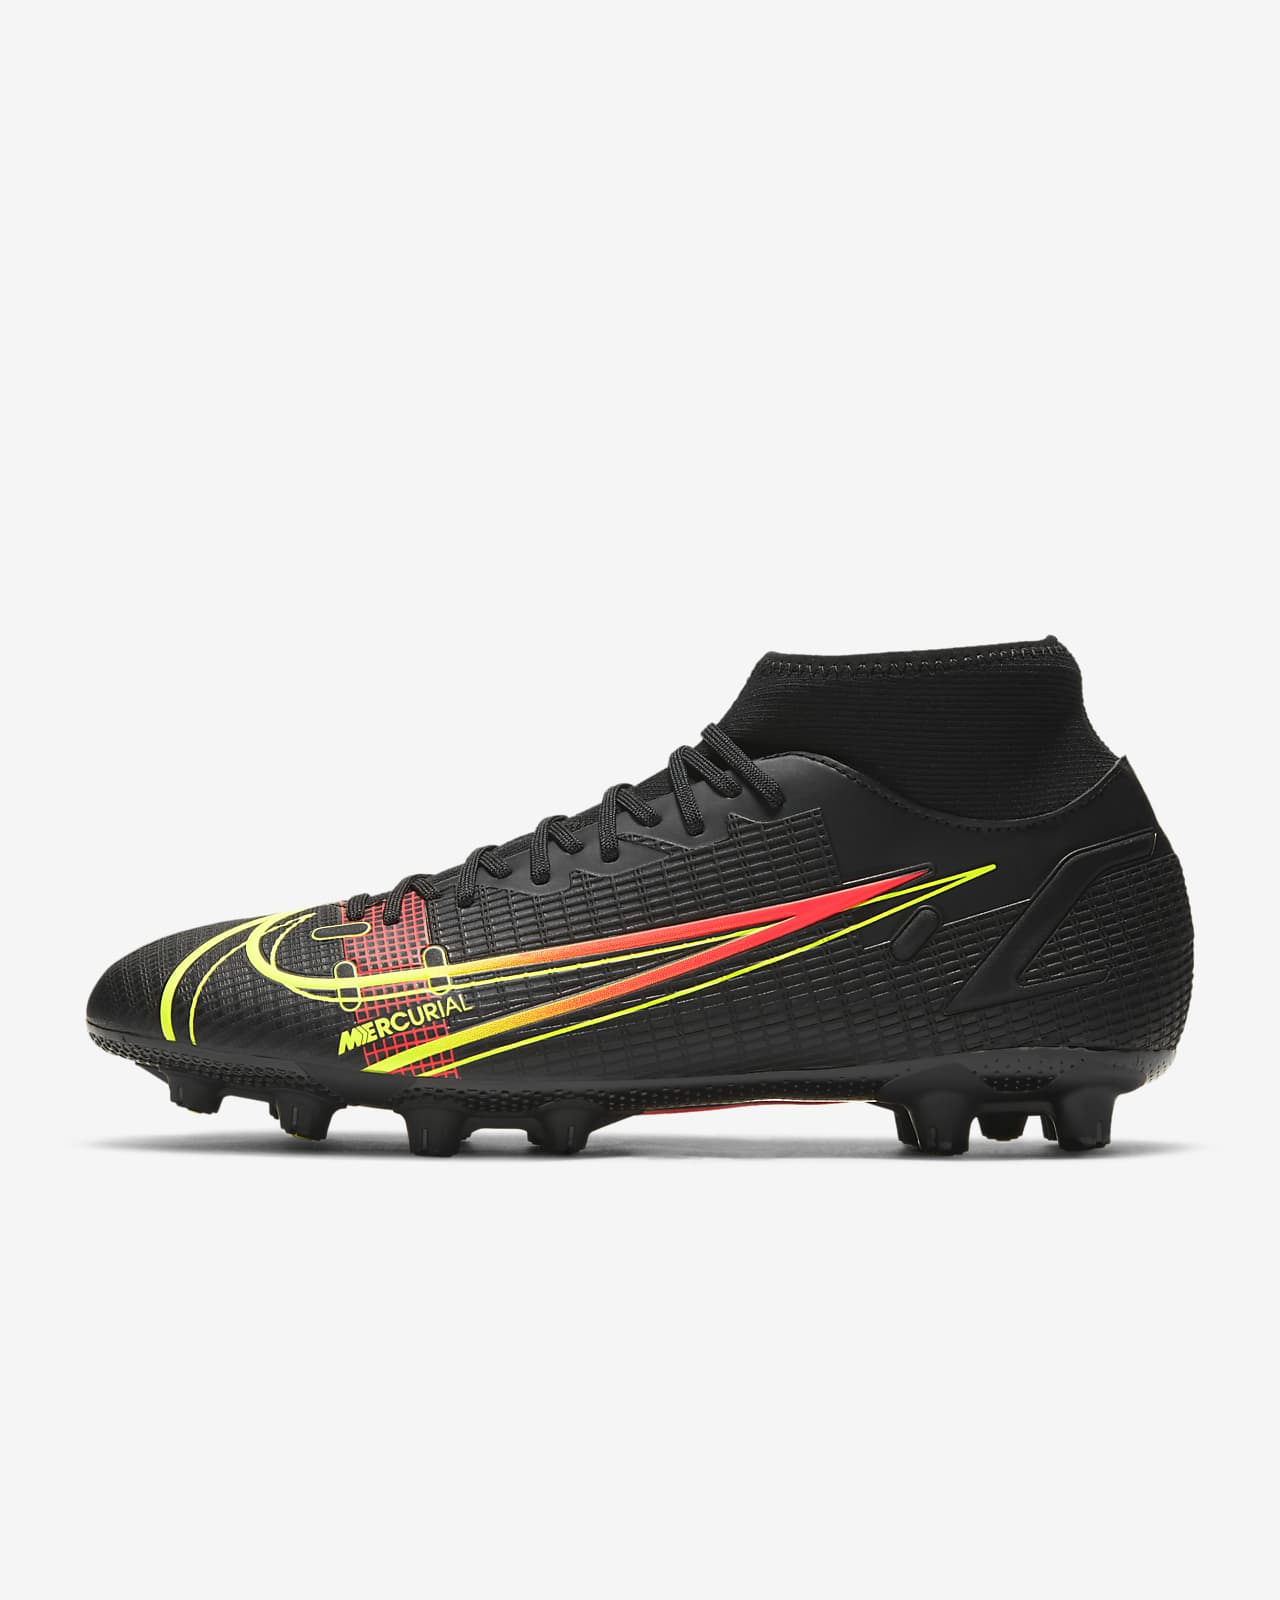 Nike Mercurial Superfly 8 Academy HG Hard-Ground Soccer Cleat